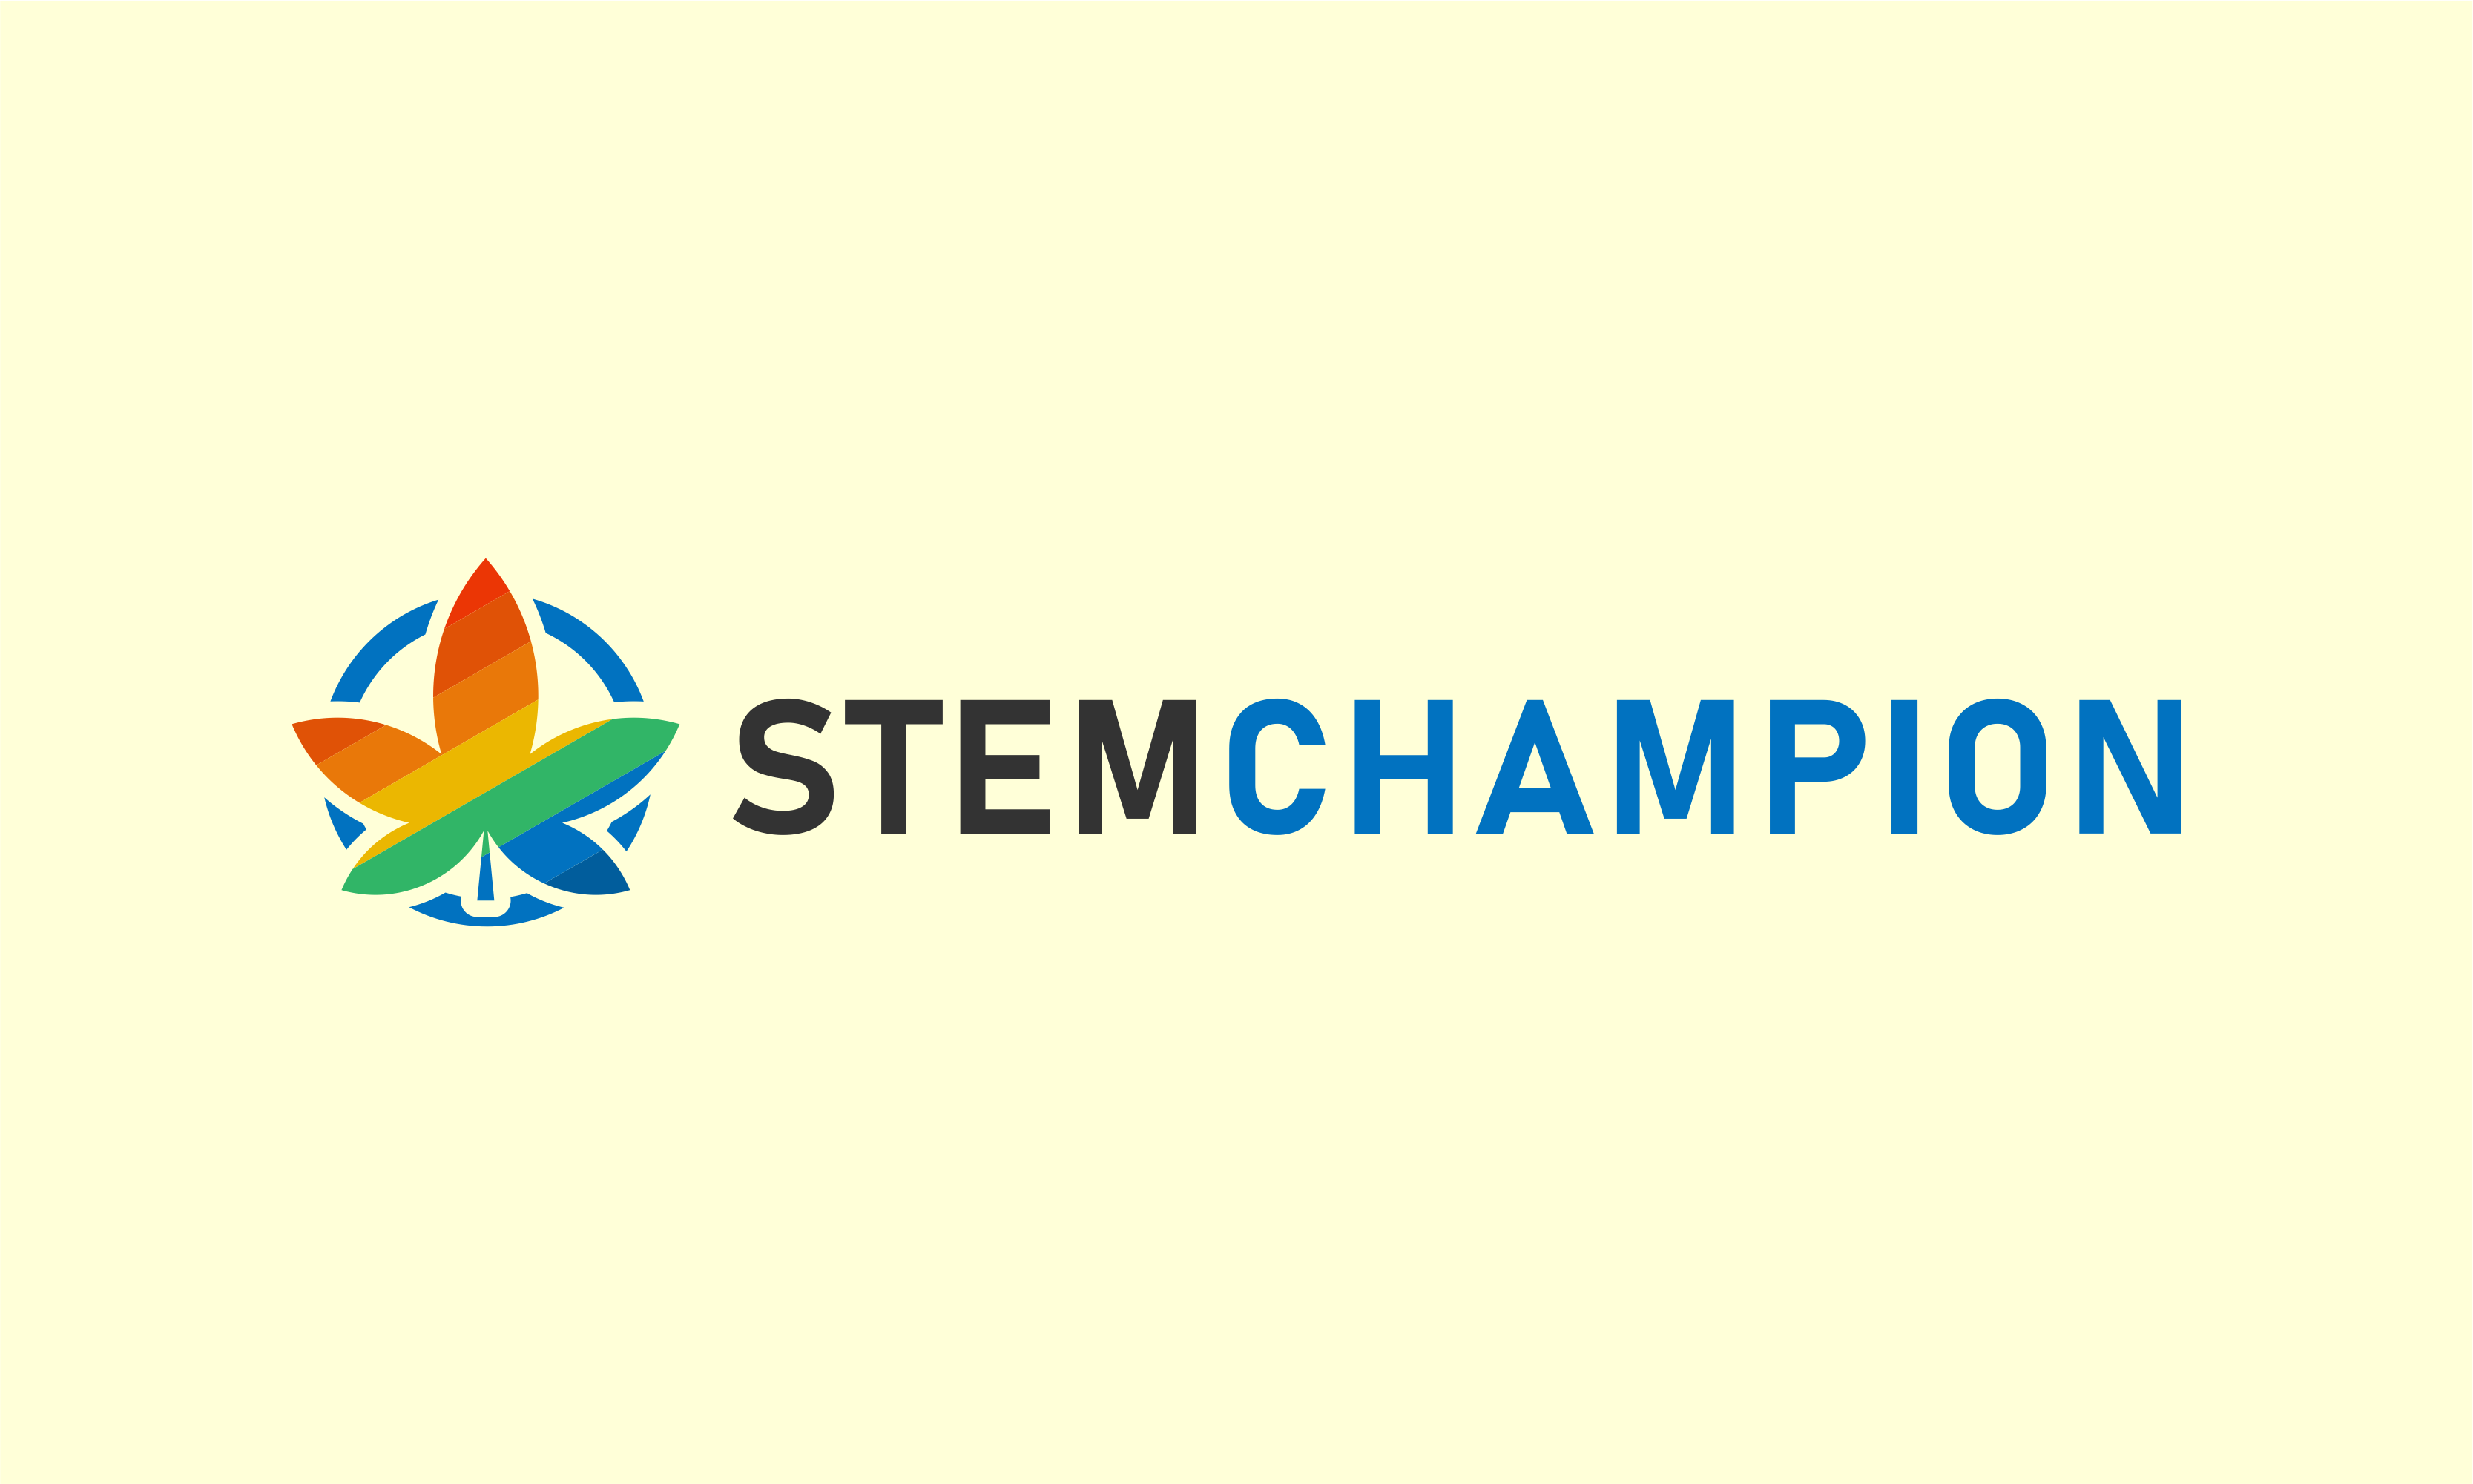 Stemchampion